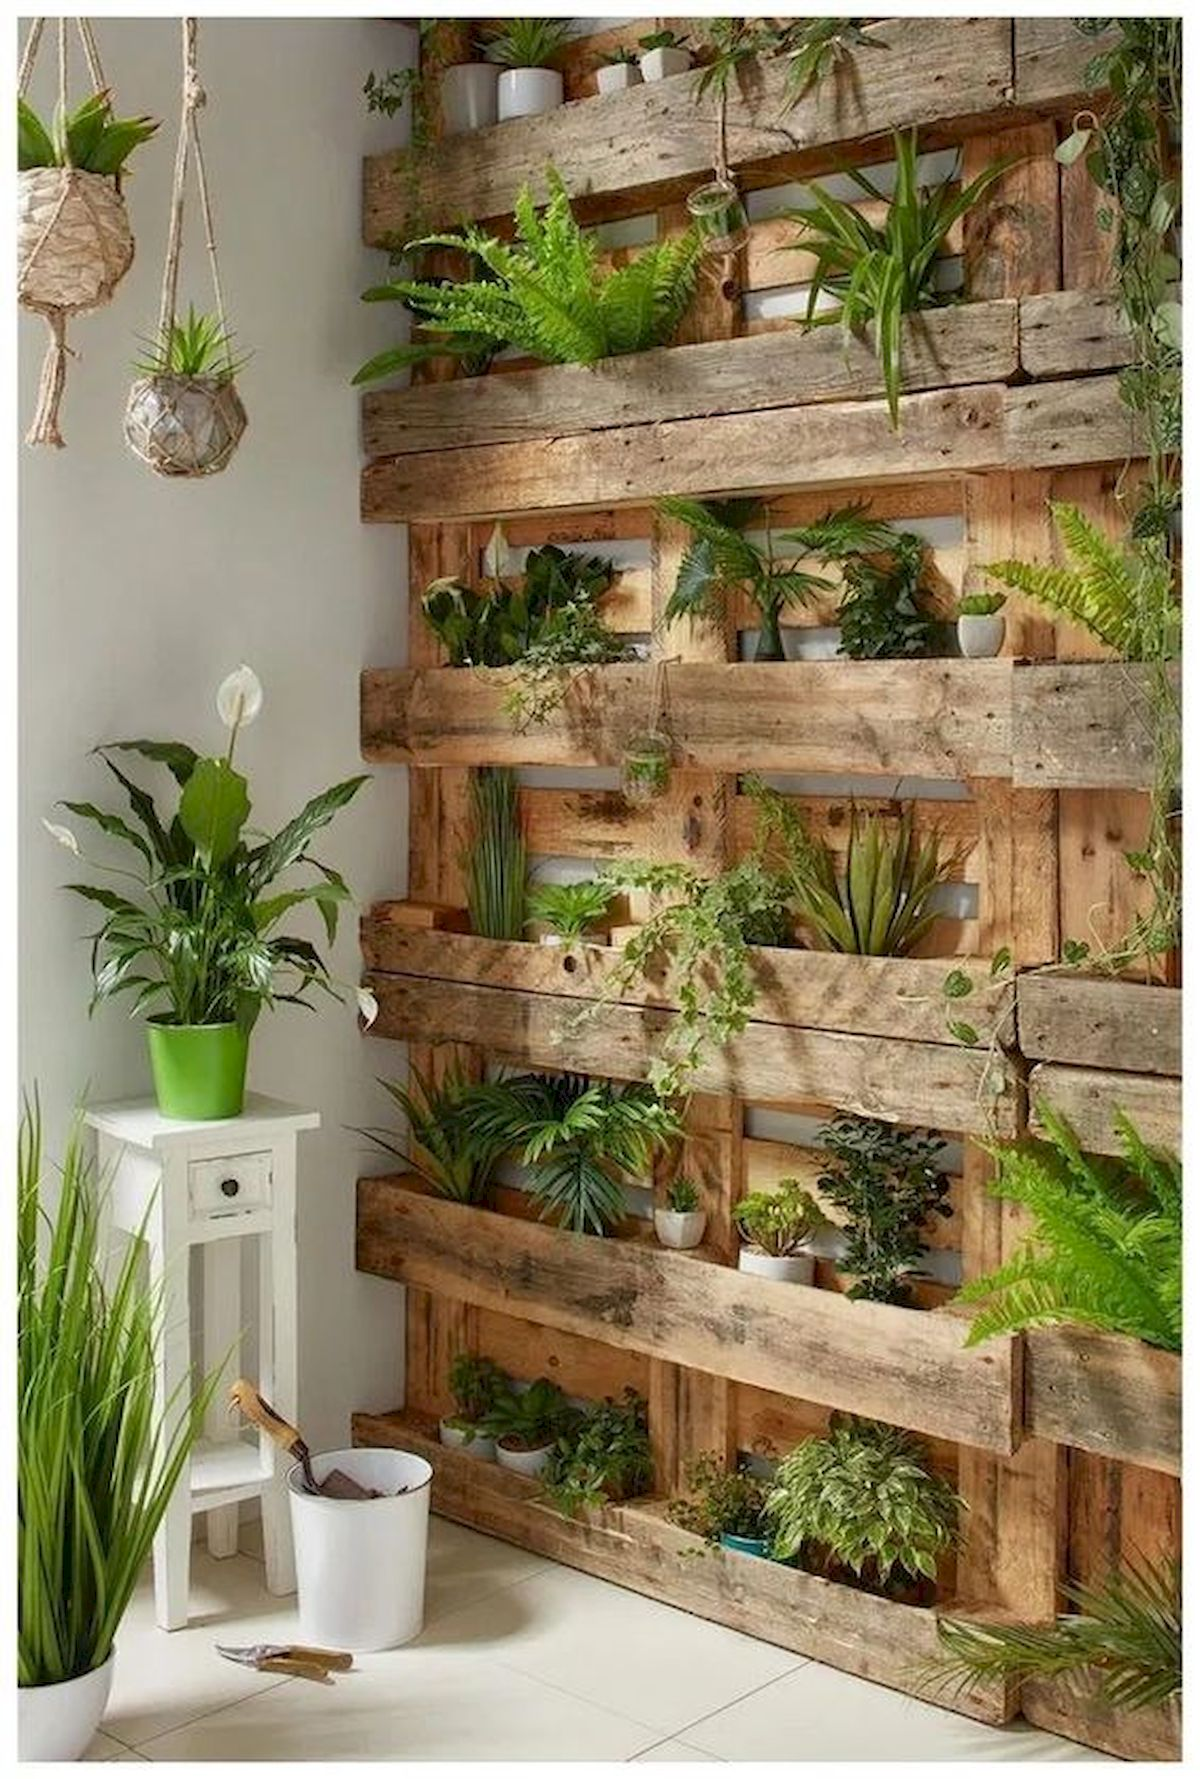 40 Awesome Indoor Garden Design Ideas That Look Beautiful ...